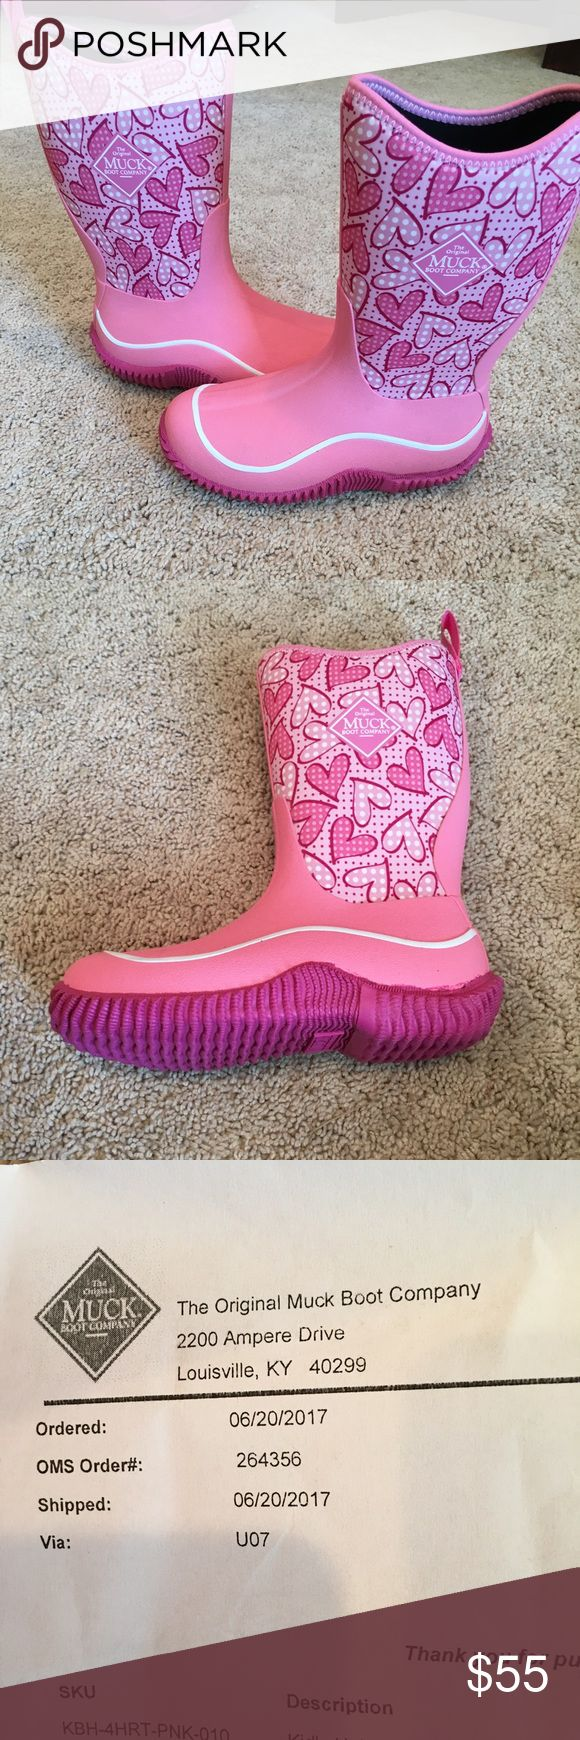 Muck boots Girls size 1!  Pink with hearts. Never worn.  Pink with hearts The Original Muck Boots.  Bought for my daughter but are the wrong size. Muck Boot Company Shoes Rain & Snow Boots